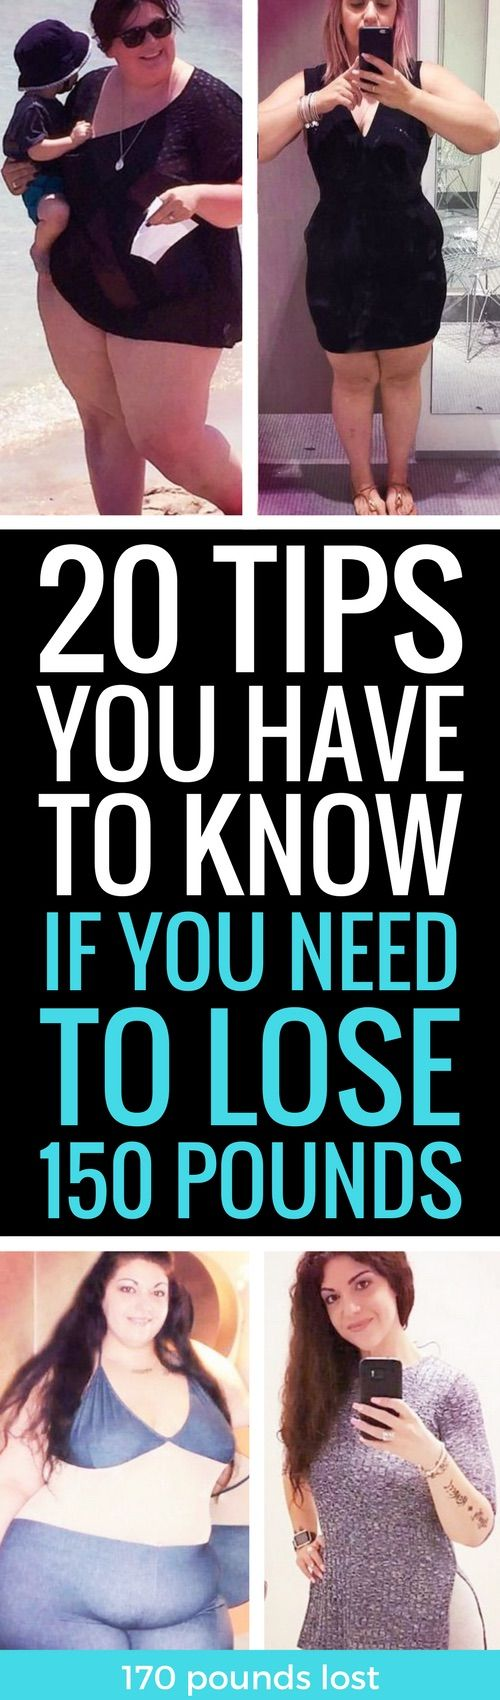 20 weight loss tips that are better than just eating once a day.